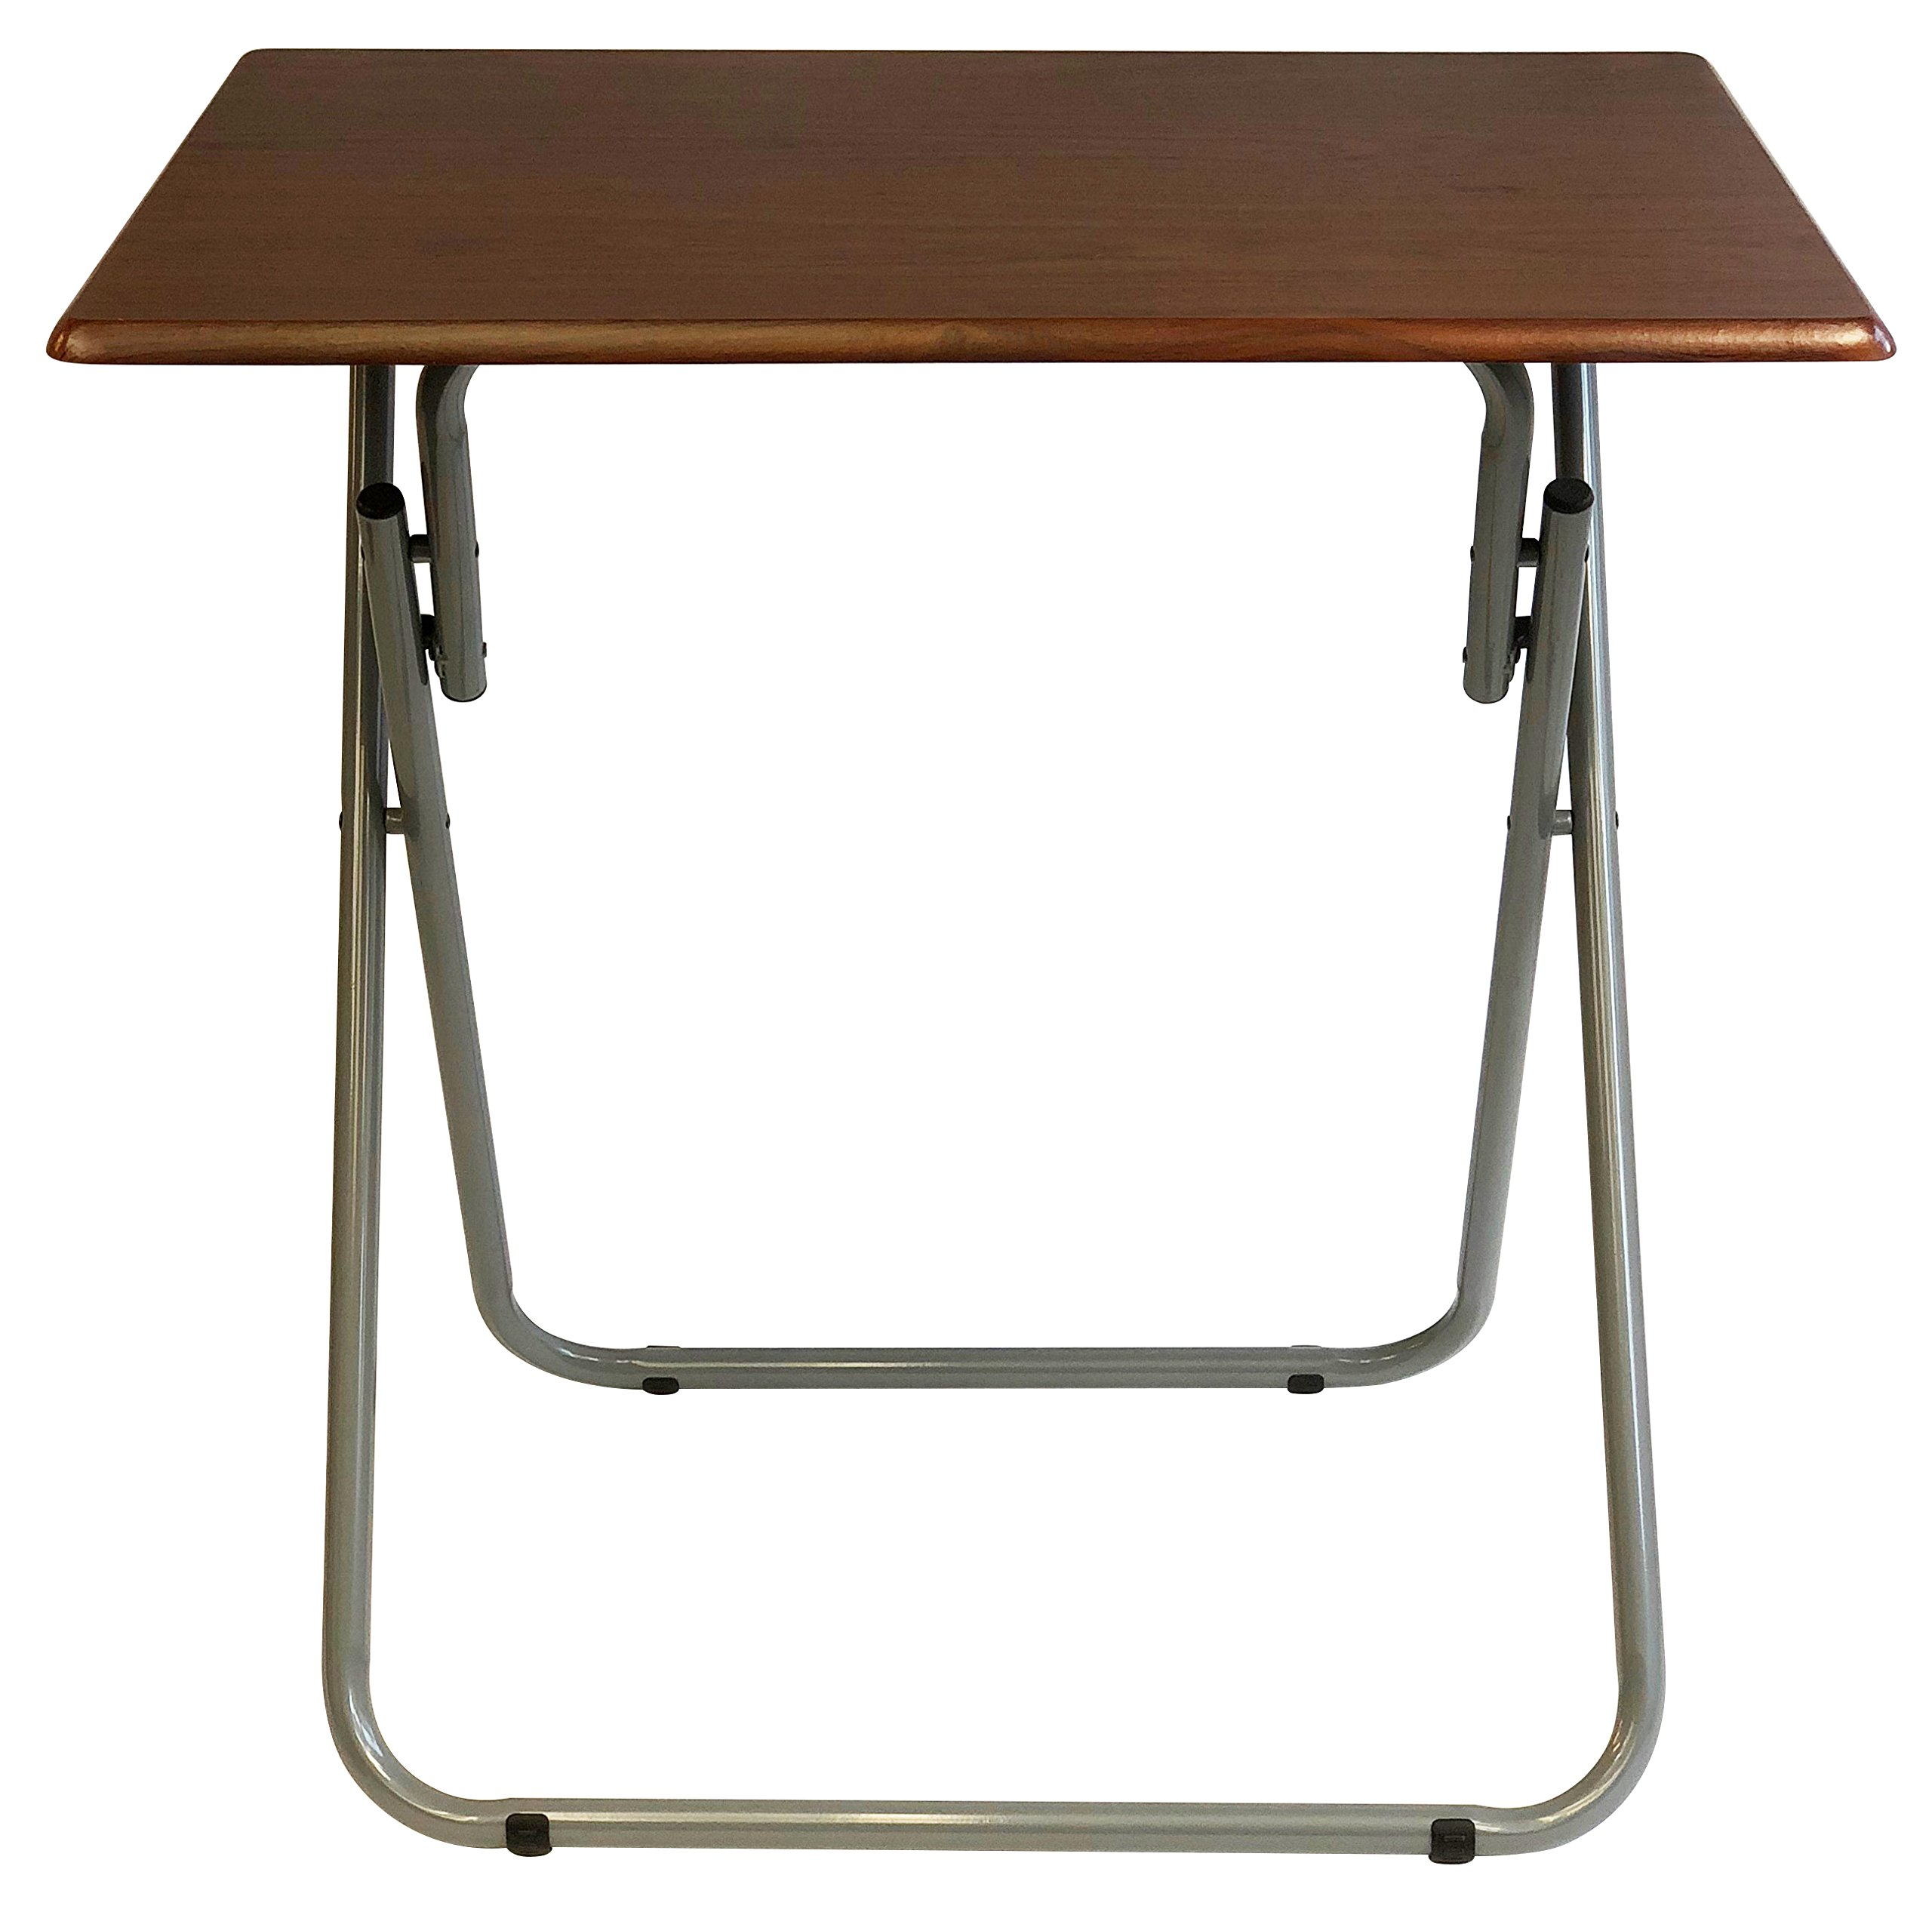 Wee's Beyond 1306 Over-Sized TV Tray Folding Table, Cherry by Wee's Beyond (Image #5)